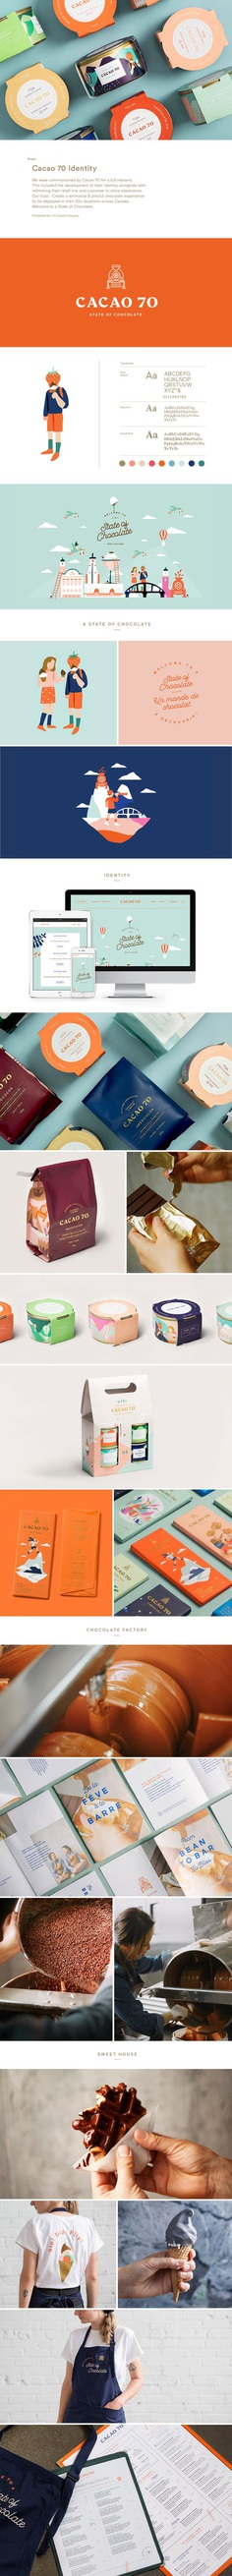 Cacao 70's full rebrand was designed by Montréal-Tokyo brand consultancy, In Good Company.  This included the development of their identity alongside rethinking their retail line and customer in-store experience. For more of the most beautiful designs visit mindsparklemag.com